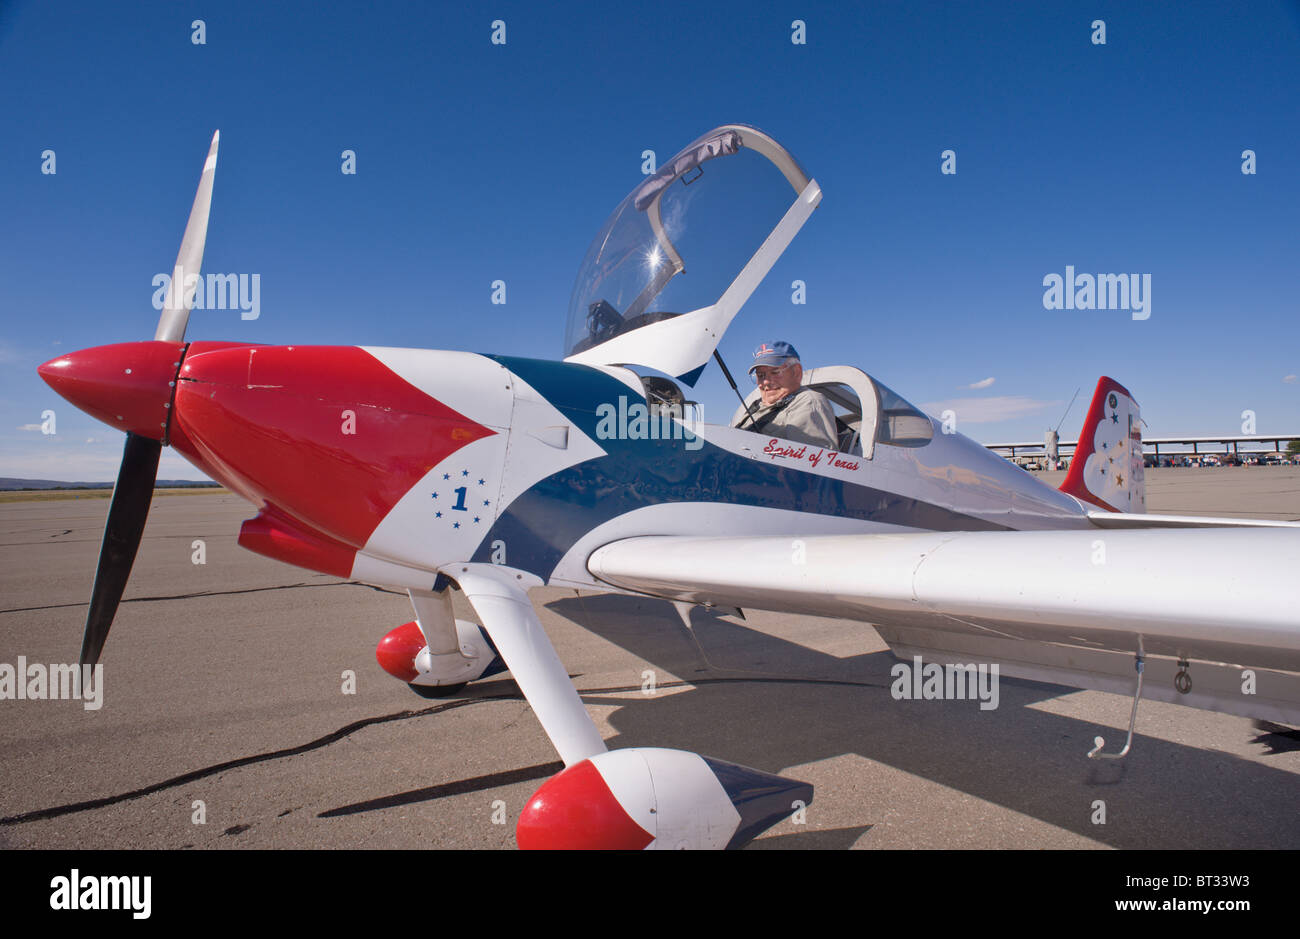 A pilot prepares for takeoff, at the Ruidoso Mountain High Fly In, Ruidoso, New Mexico. - Stock Image